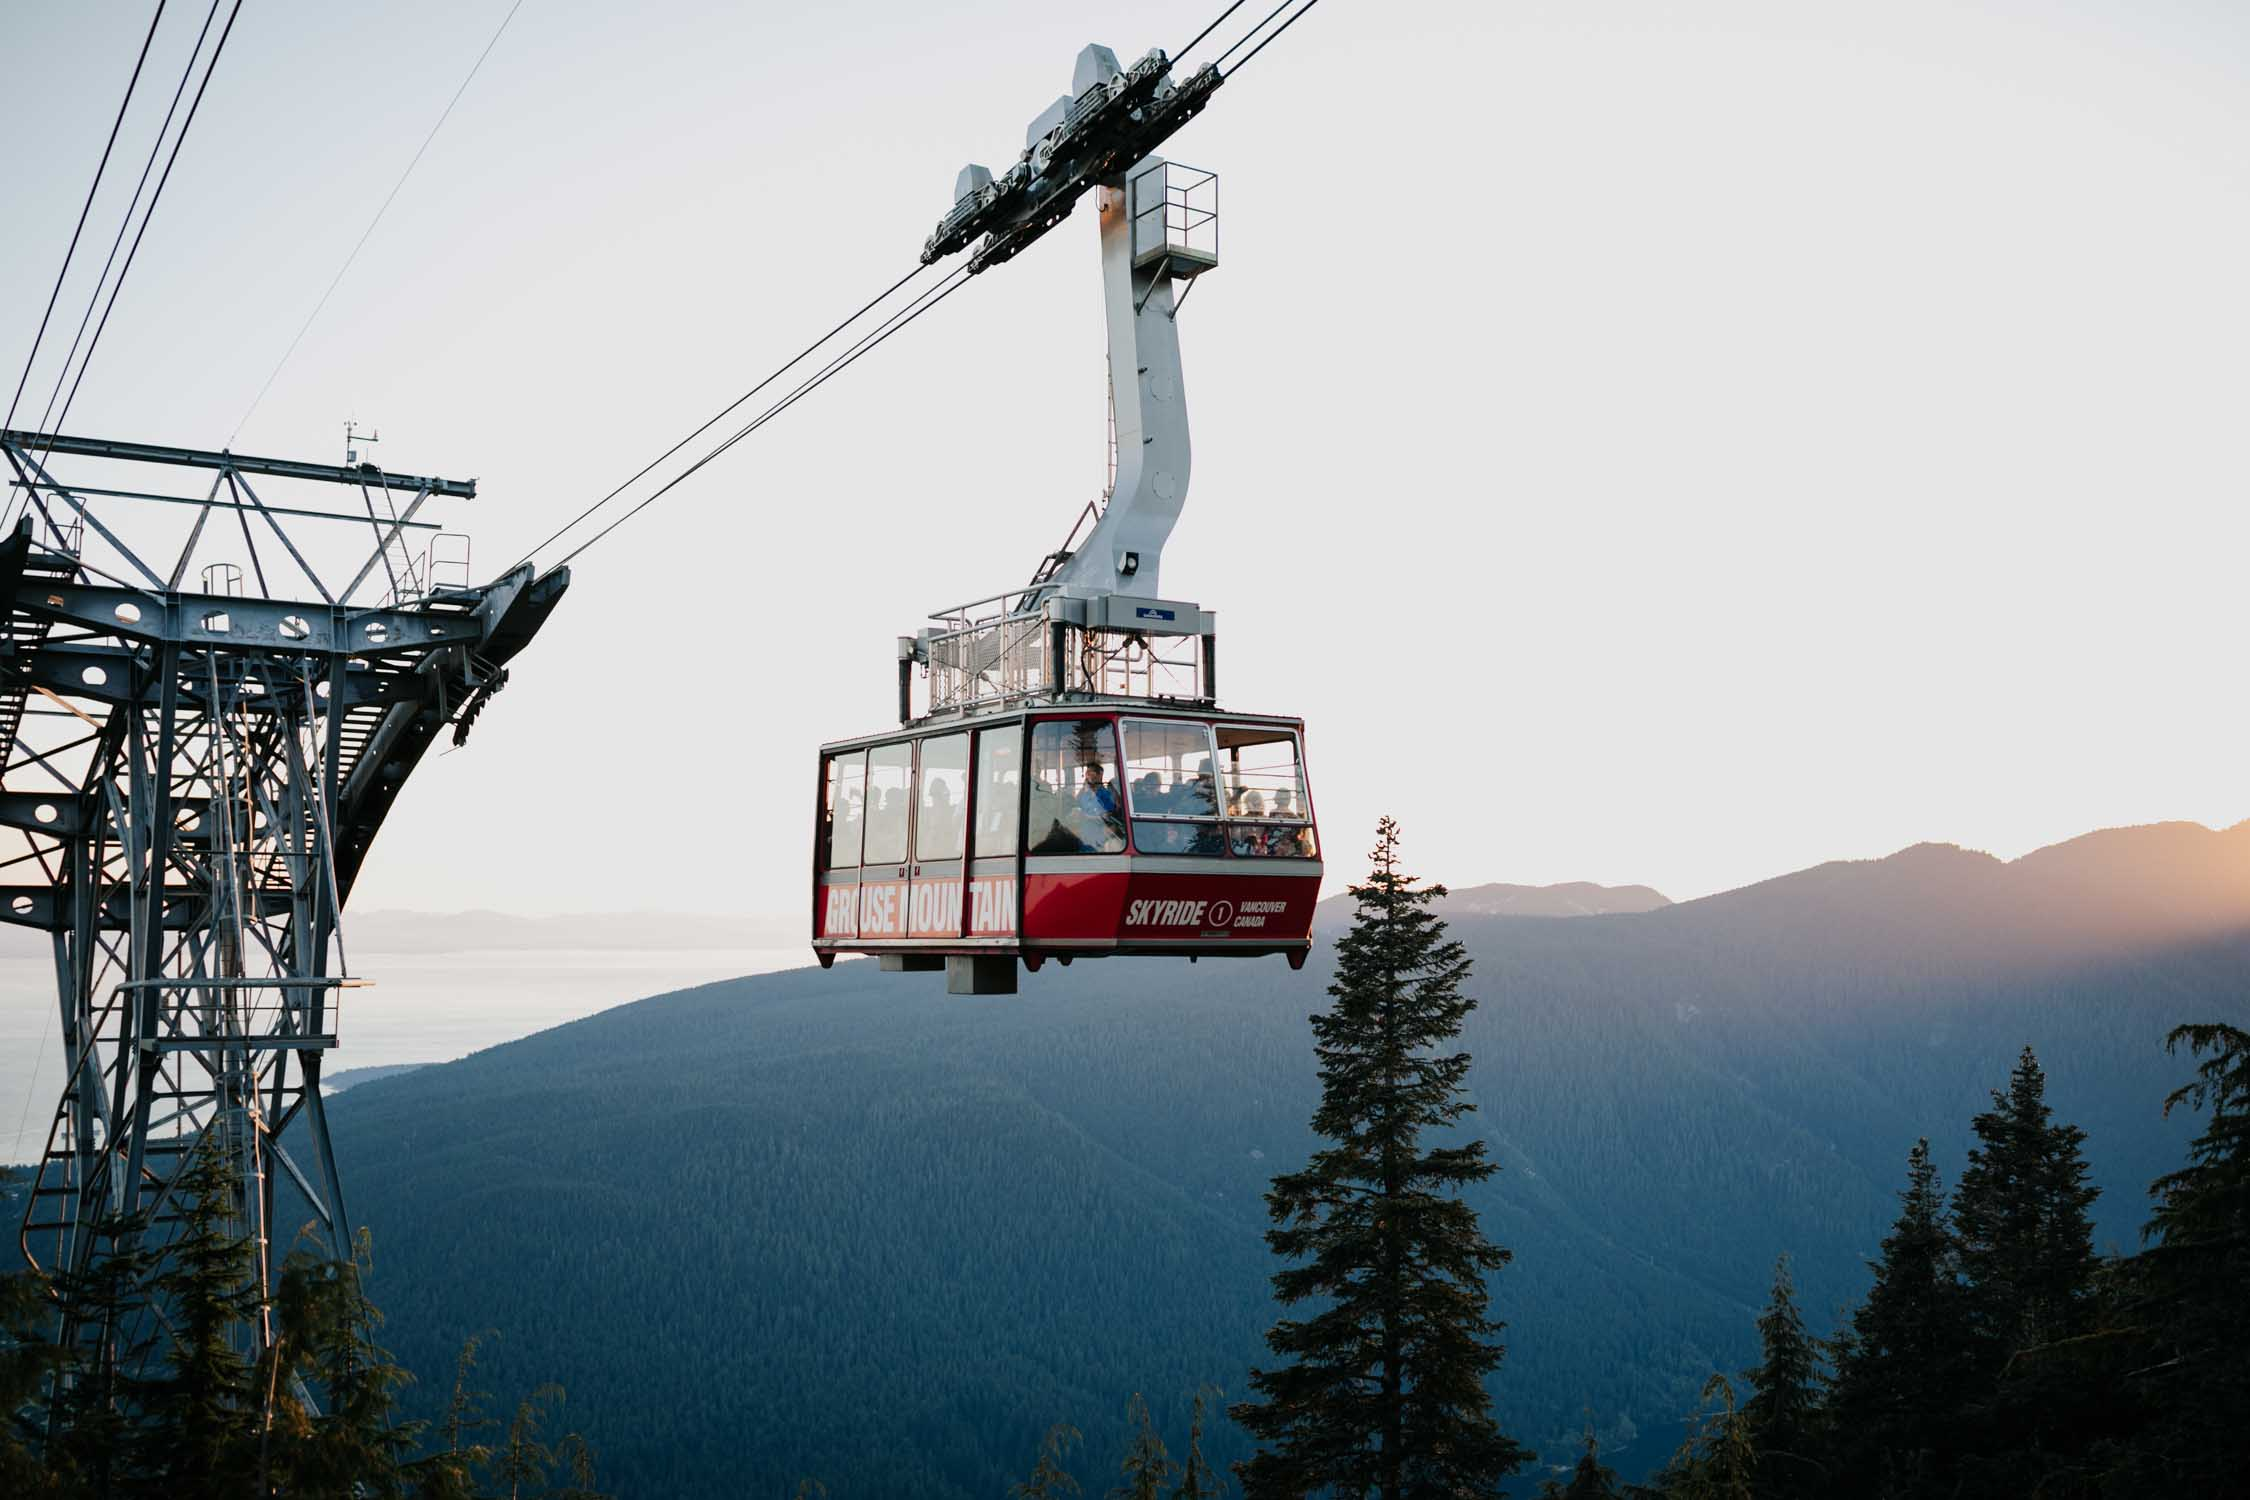 Gondola Grouse Mountain Wedding Venue